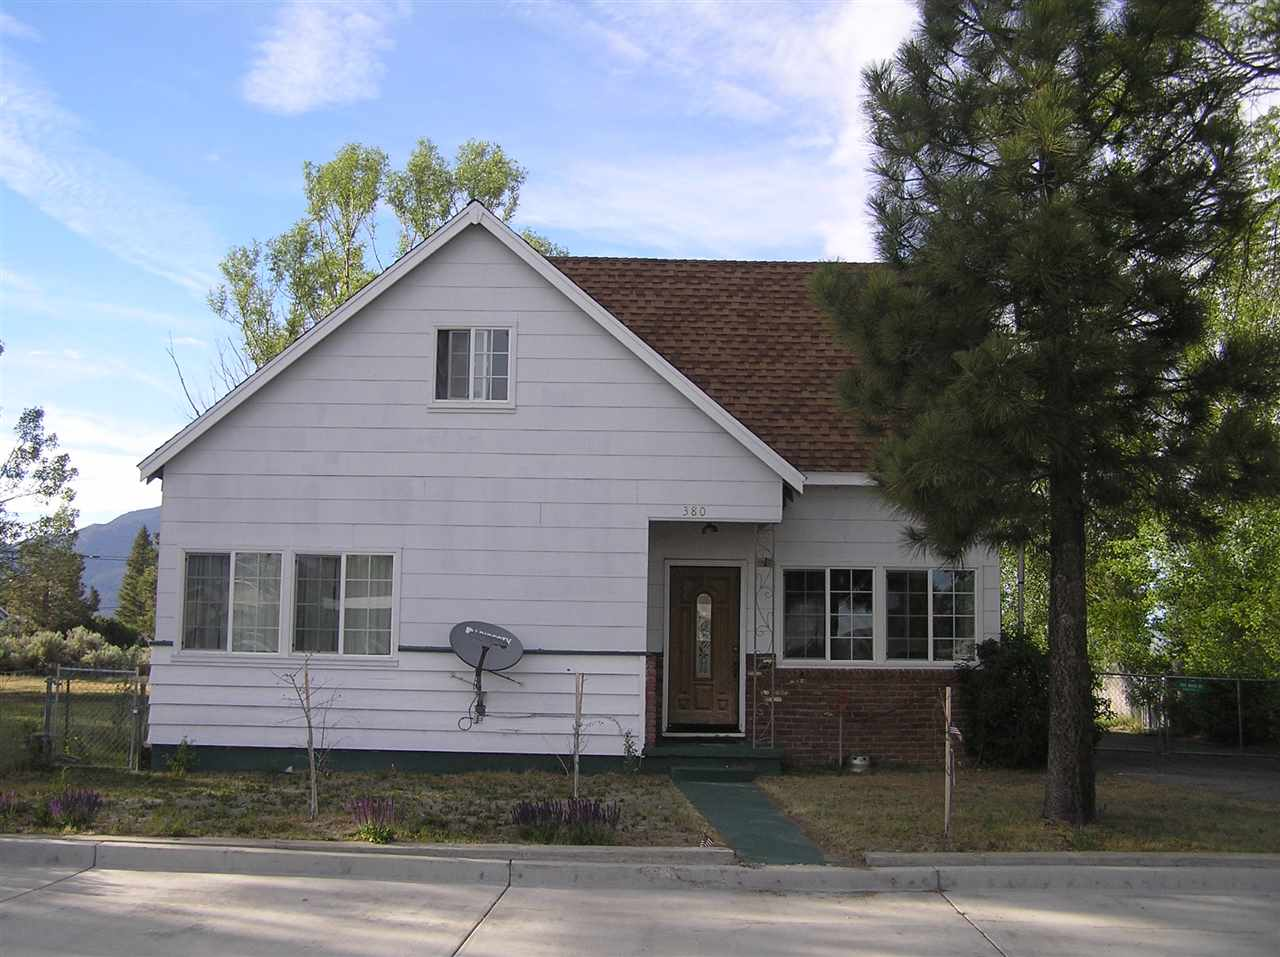 Cute and cozy, this Bridgeport home is spacious and cheerful. It has a large kitchen with lots of cabinets, three baths, a gas log fireplace and a big back yard. It offers ample storage space. The home was updated in 2011 and is very welcoming. A sun room has recently been added and the home features a fenced yard and two-car garage. Located on Main Street close to shopping, ning and all of the summer events Bridgeport offers.